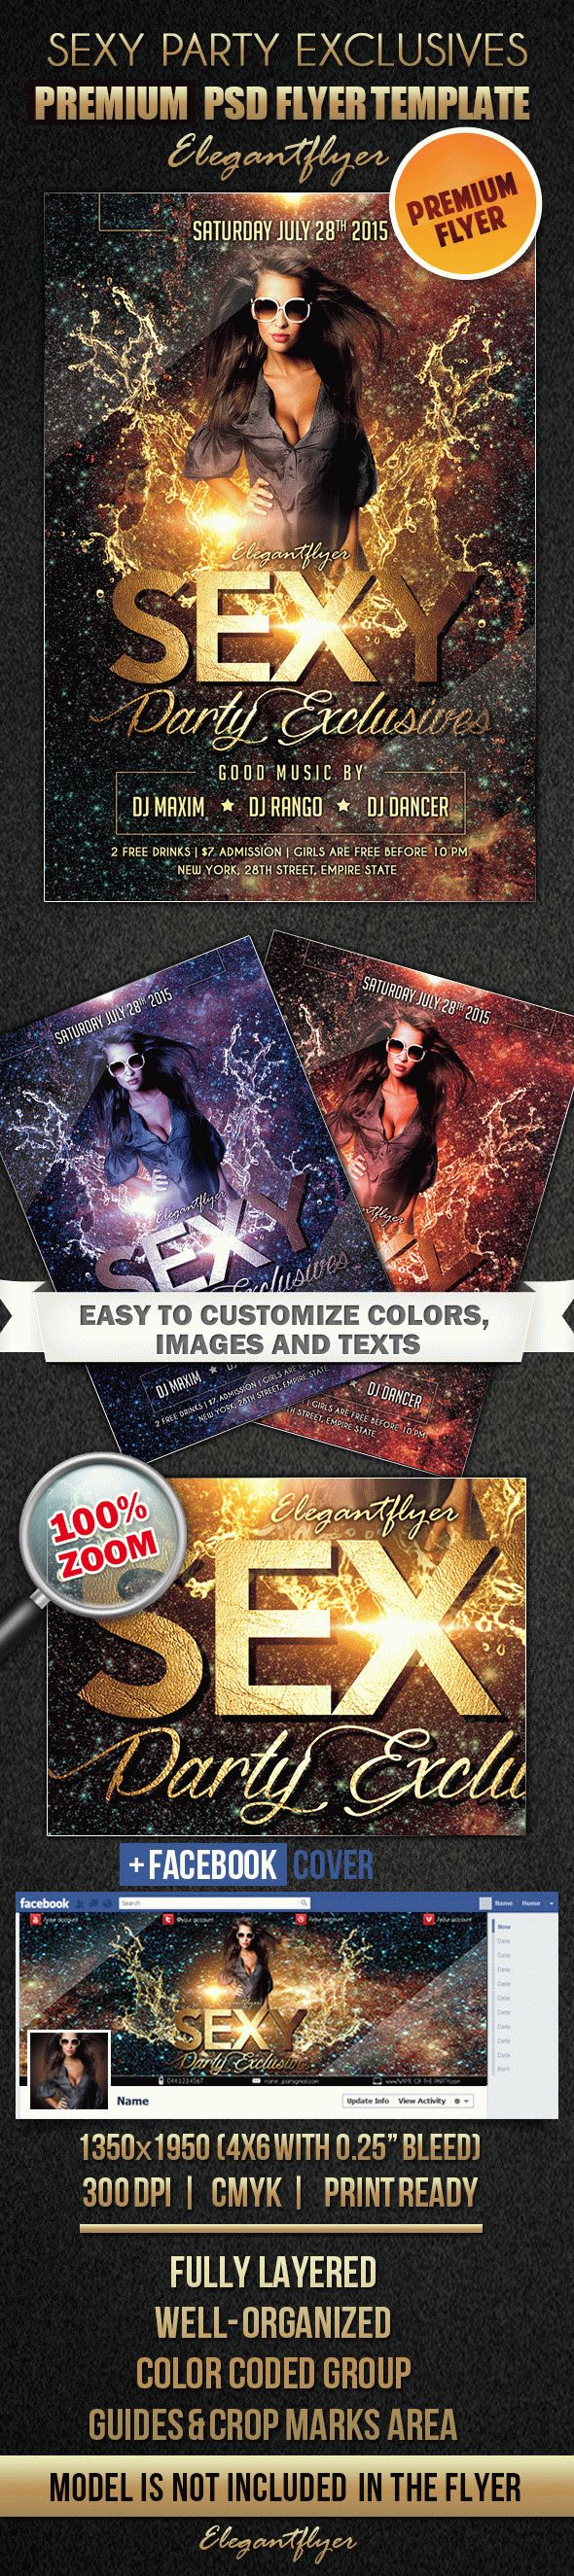 Sexy Party Exclusives – Flyer PSD Template